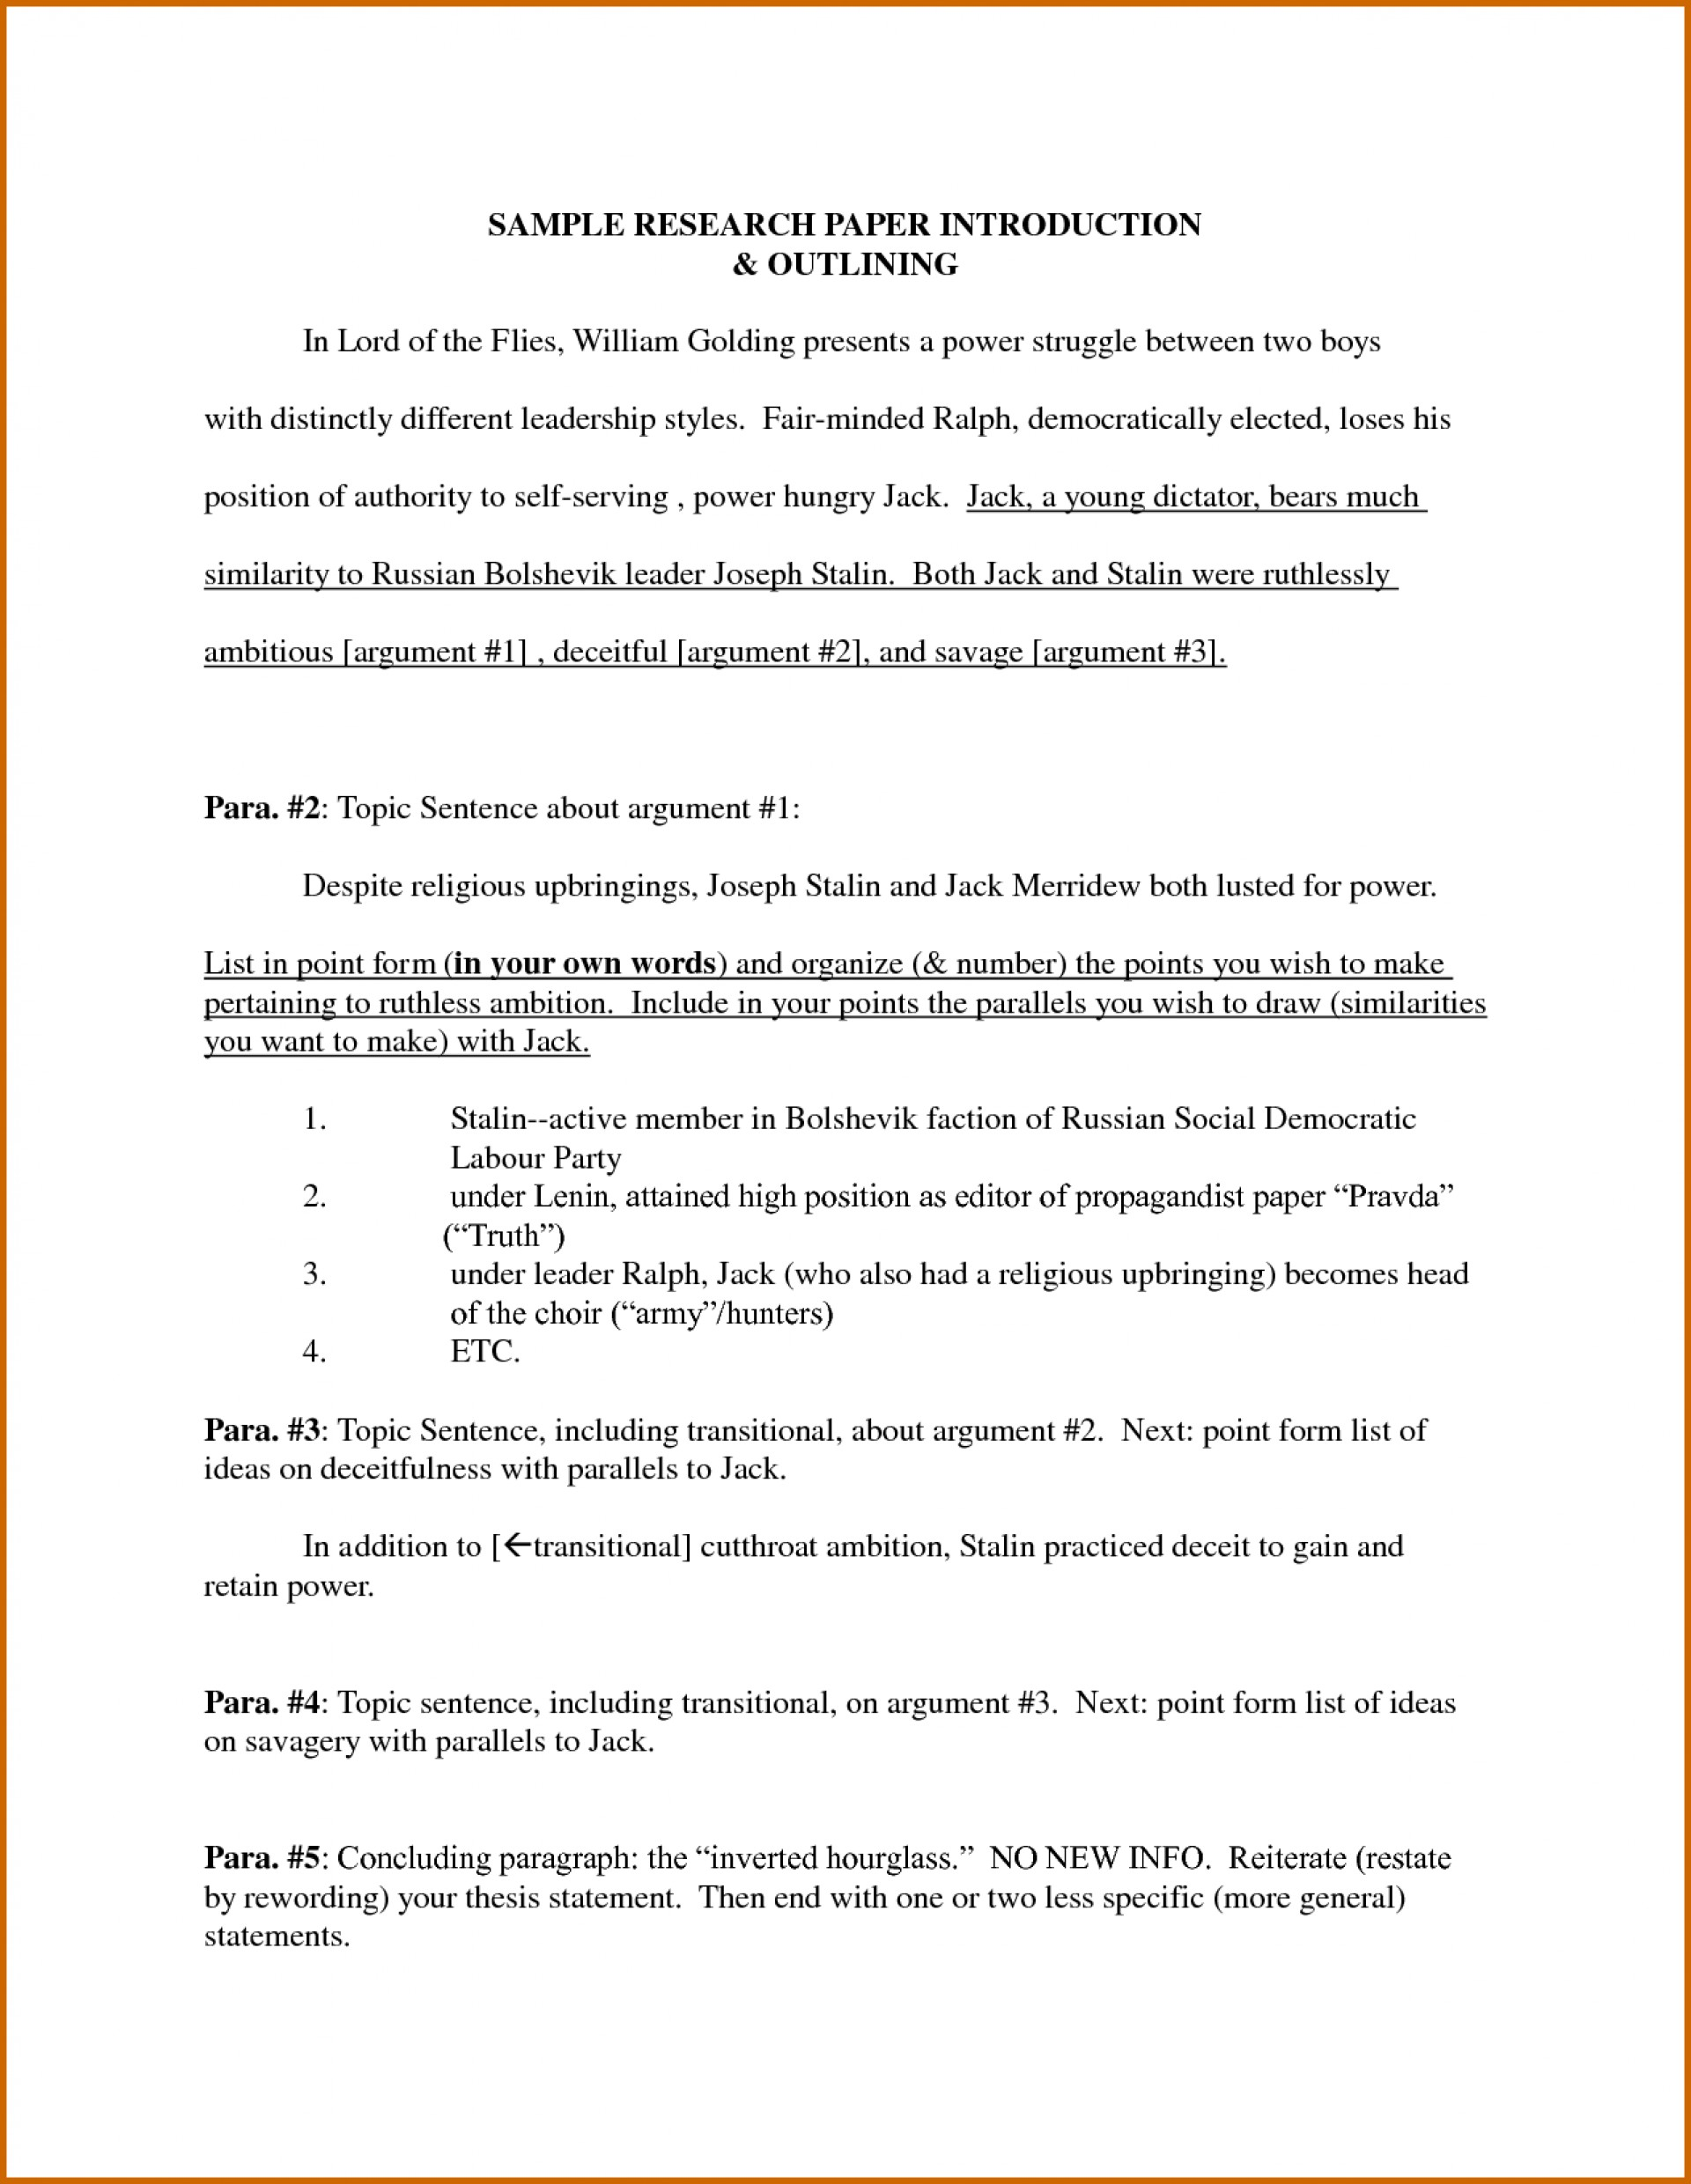 011 Research Paper Introduction For Term Sample How To Write Good Awful A Paragraph 1920